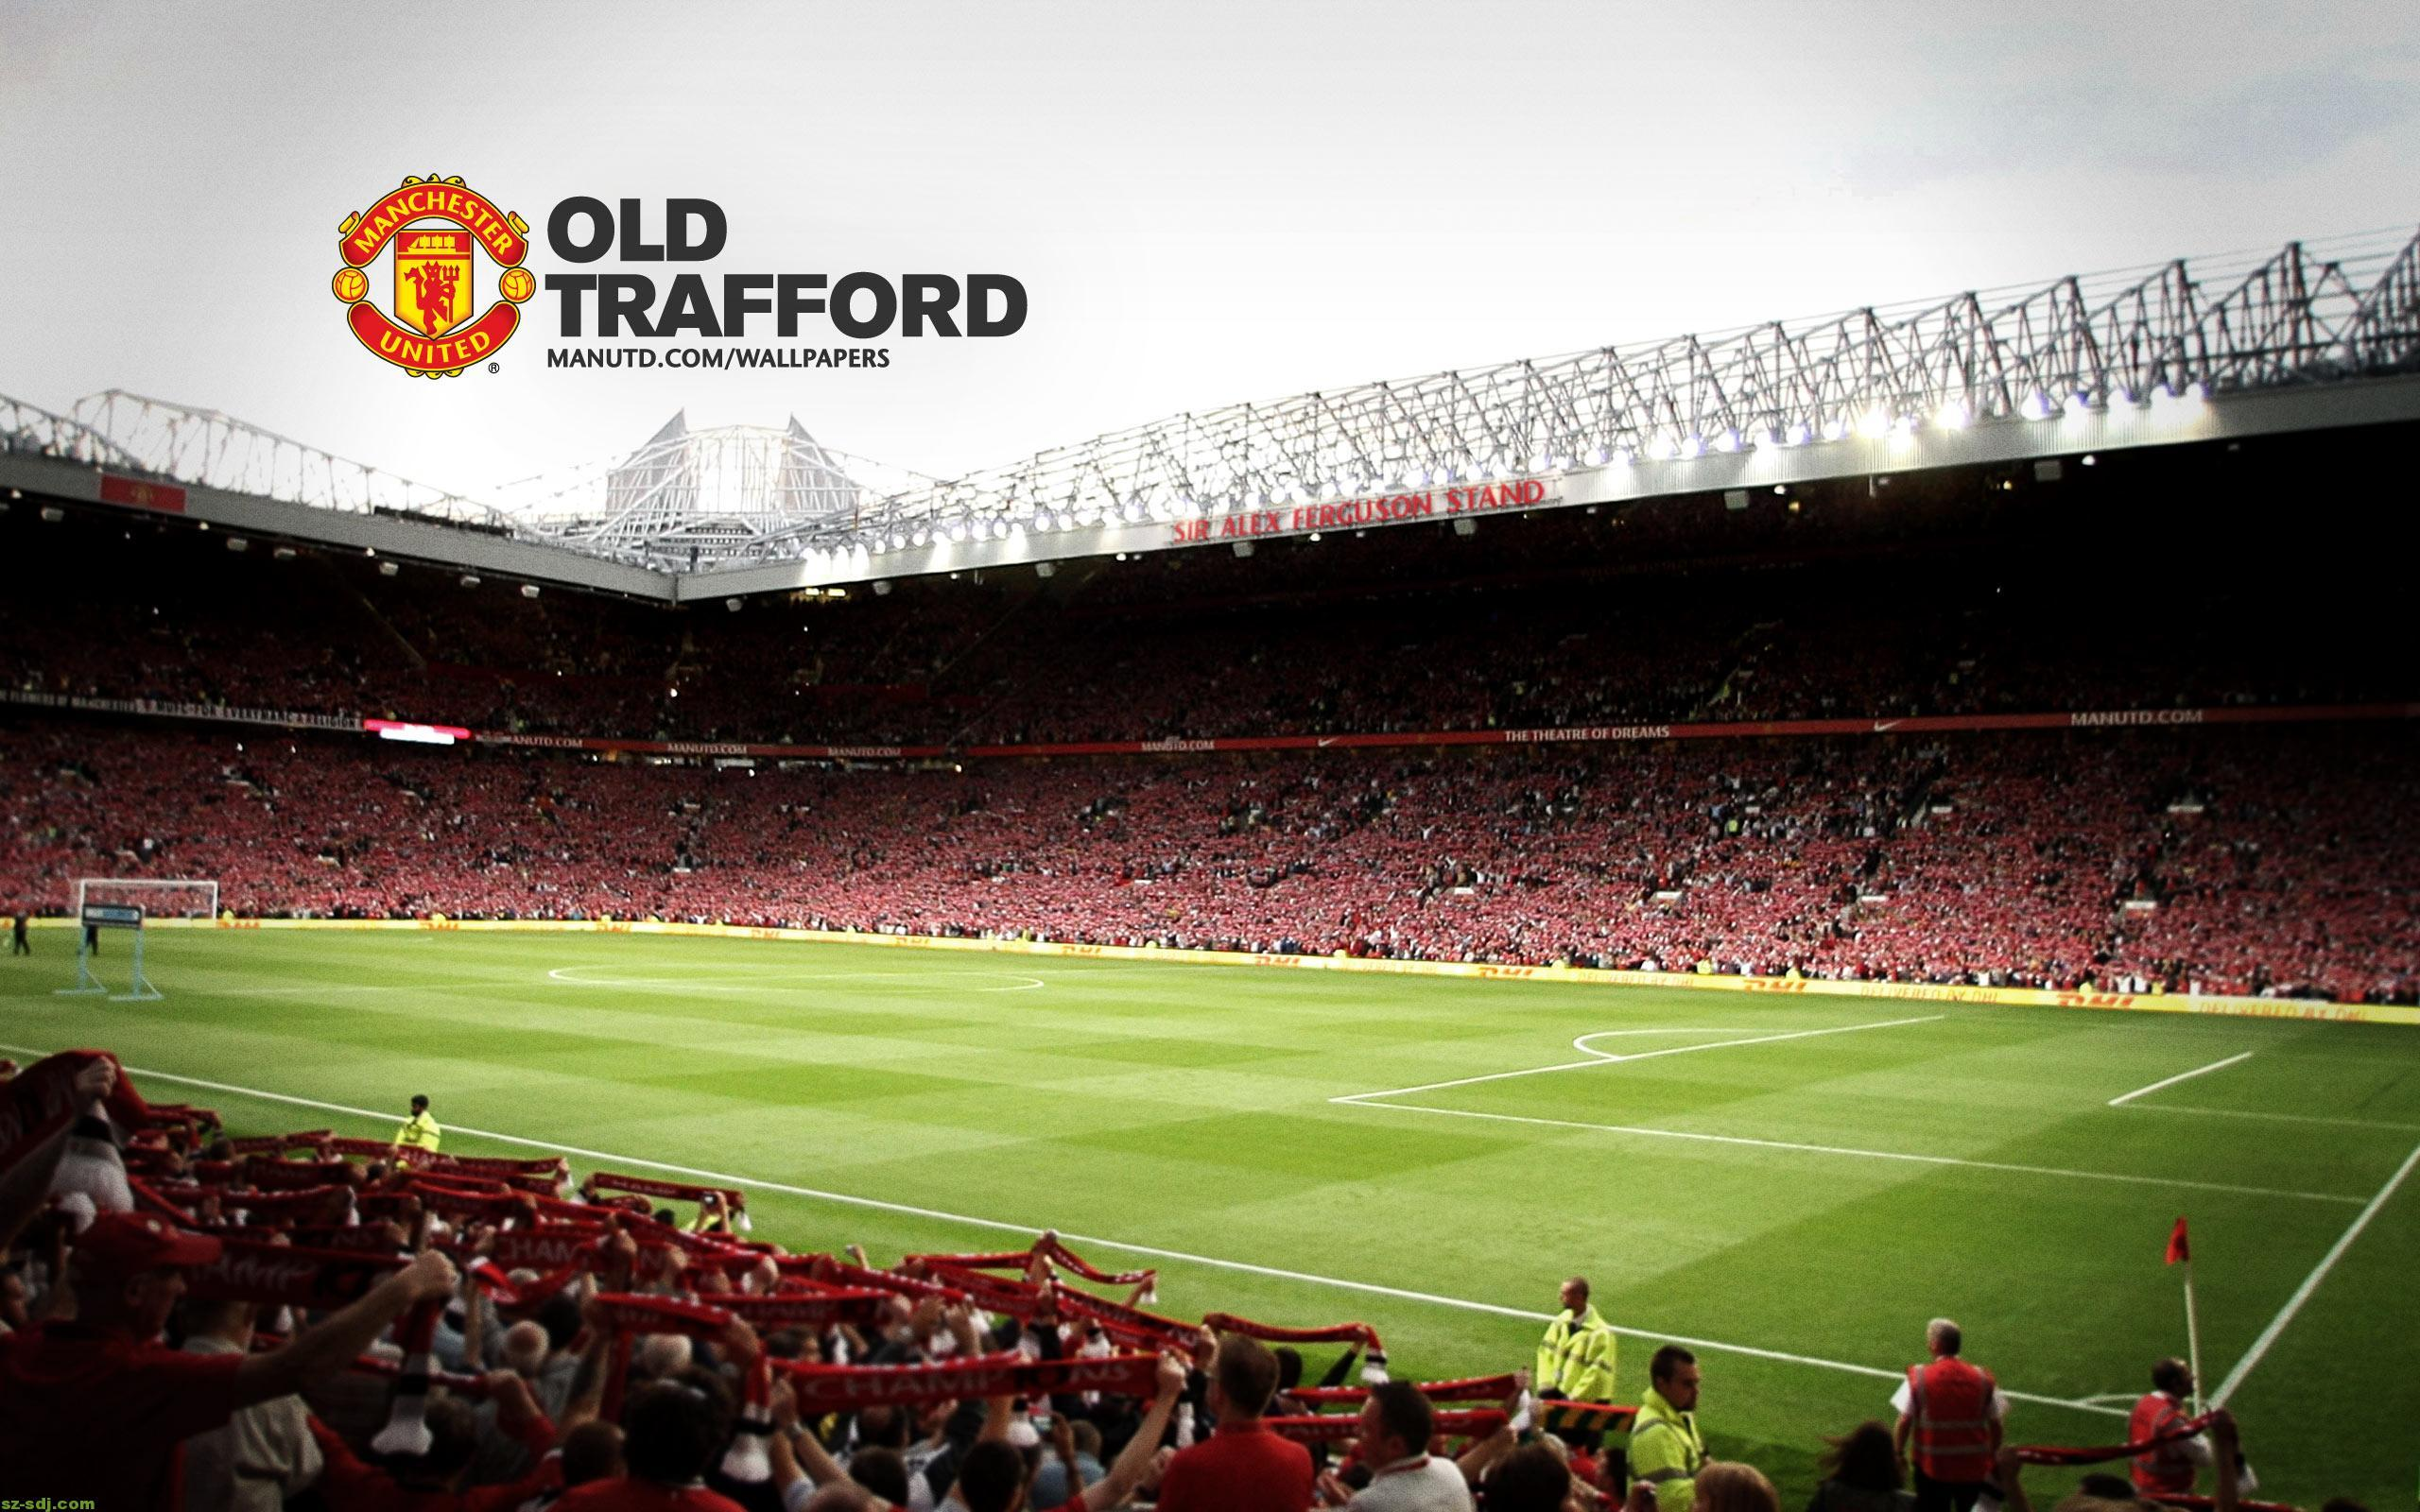 manchester united mac wallpapers wallpaper cave manchester united mac wallpapers